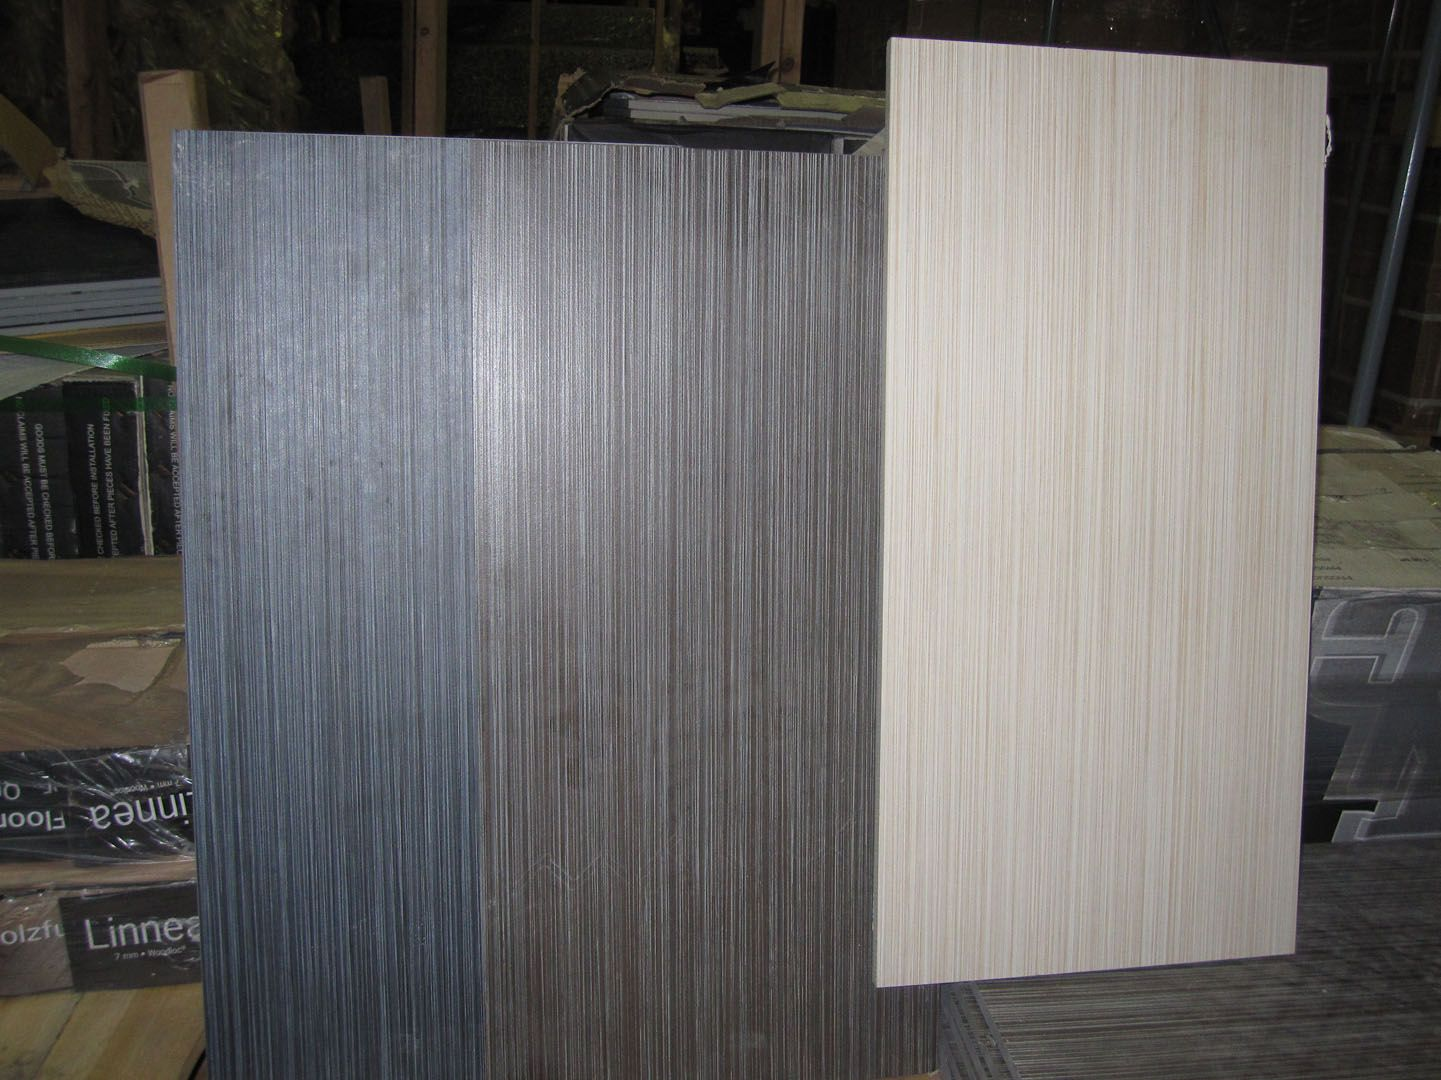 Dark Grey And Blue Linear Tile For Bathroom Floor Will Be 12x24